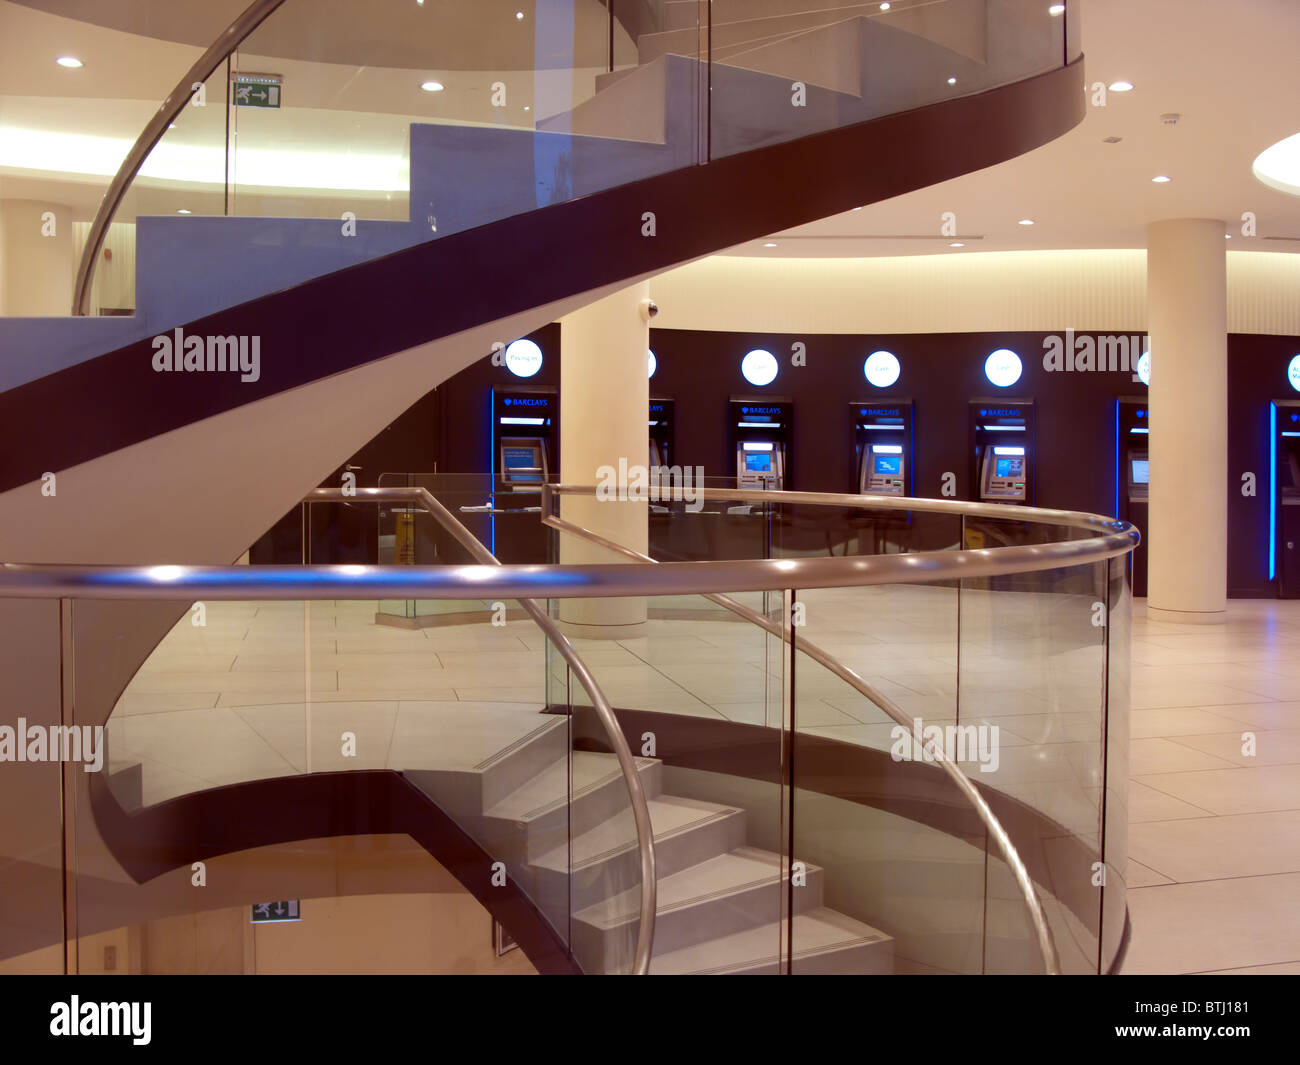 Moderne Bank Interieur Stockfoto, Bild: 32358257 - Alamy